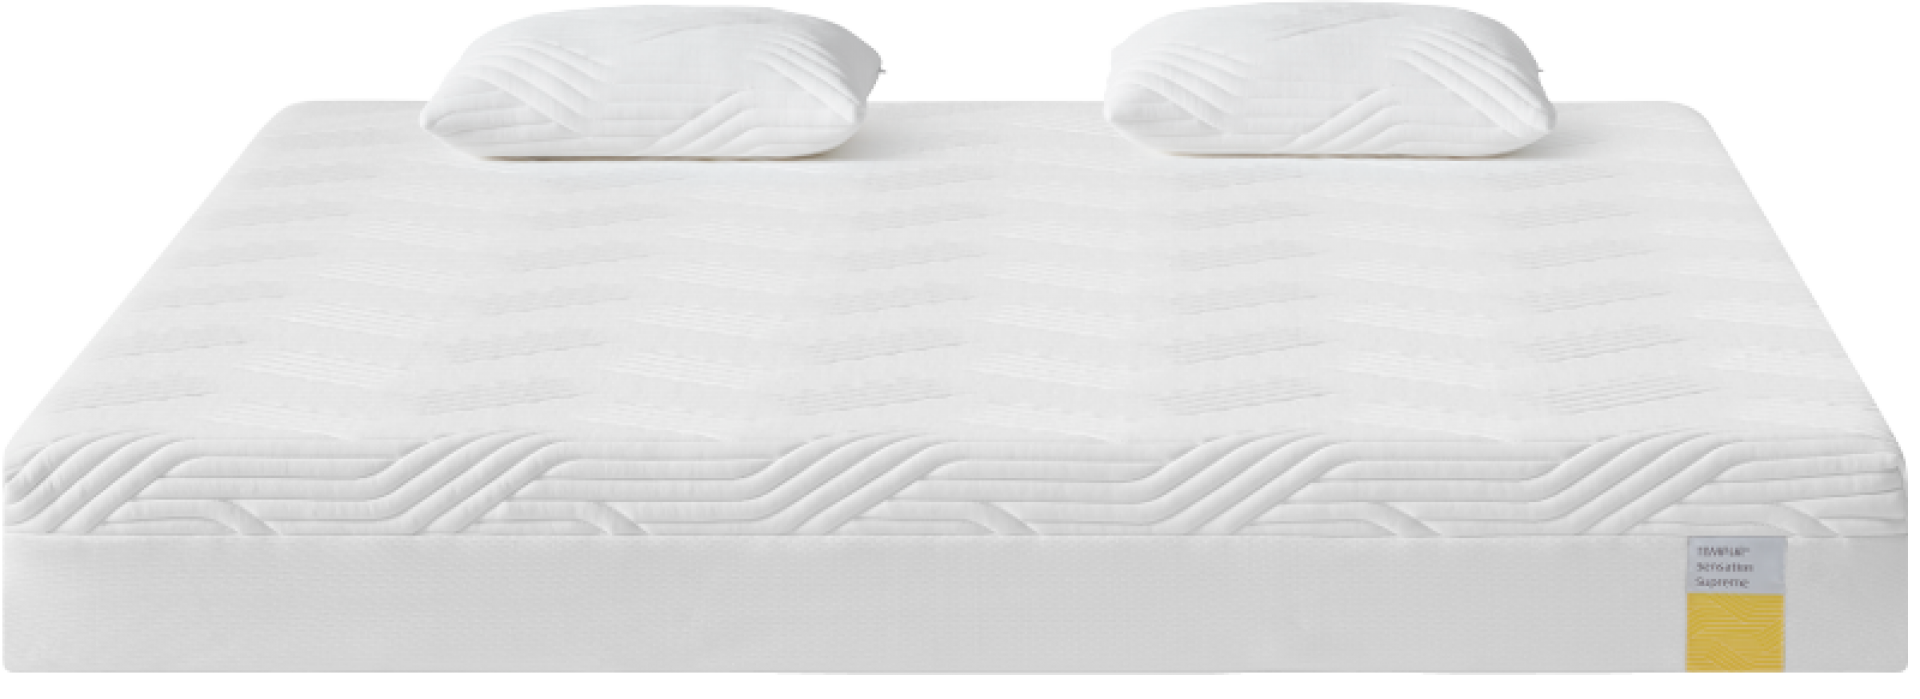 Tempur Sensation Supreme Mattress